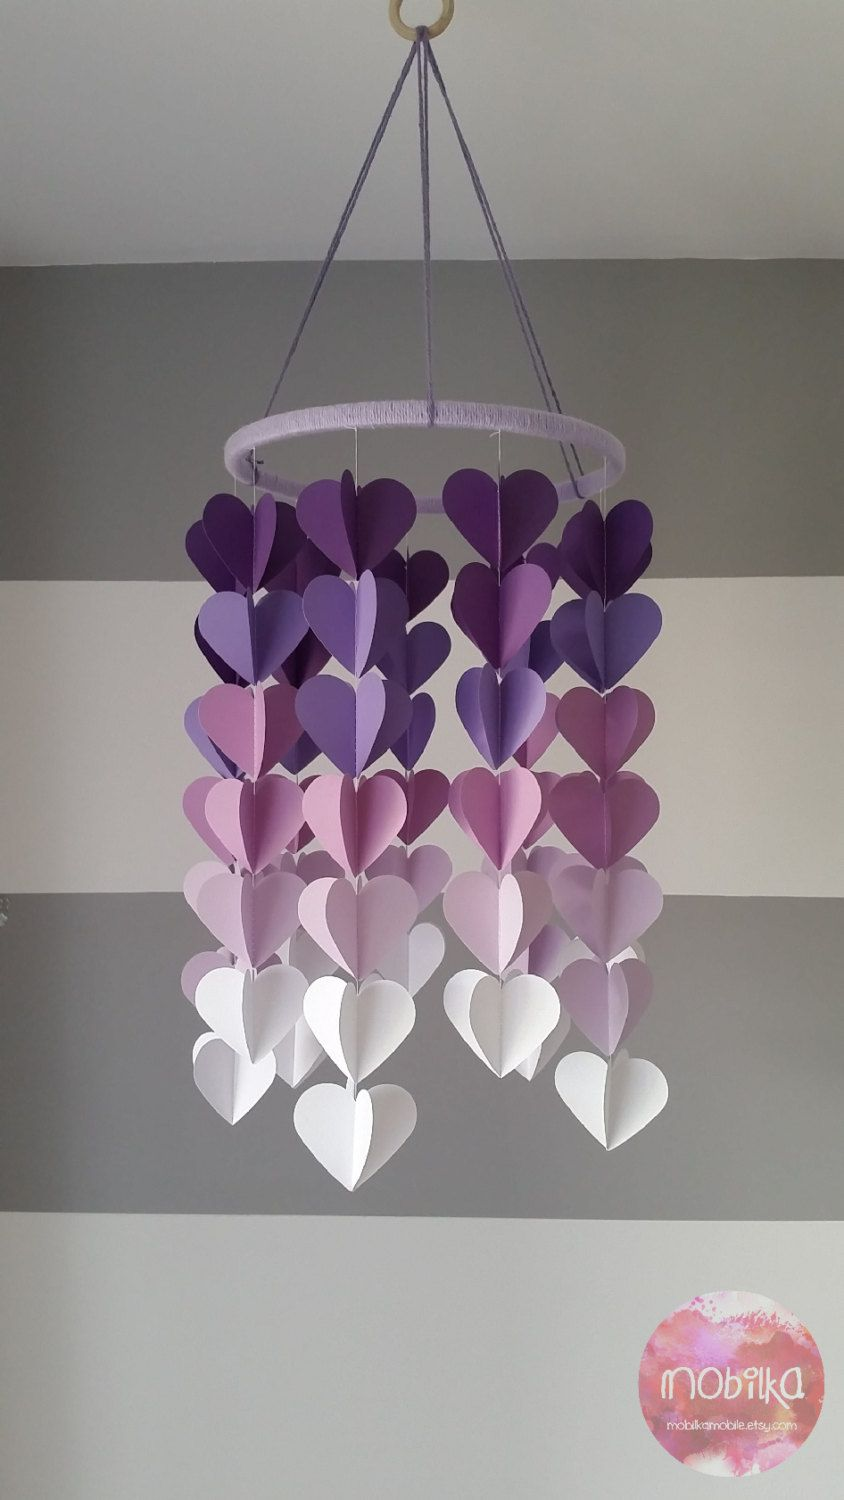 Mobile d coratif 3d en coeur d grad de mauve d coration for Decoration plafond chambre bebe